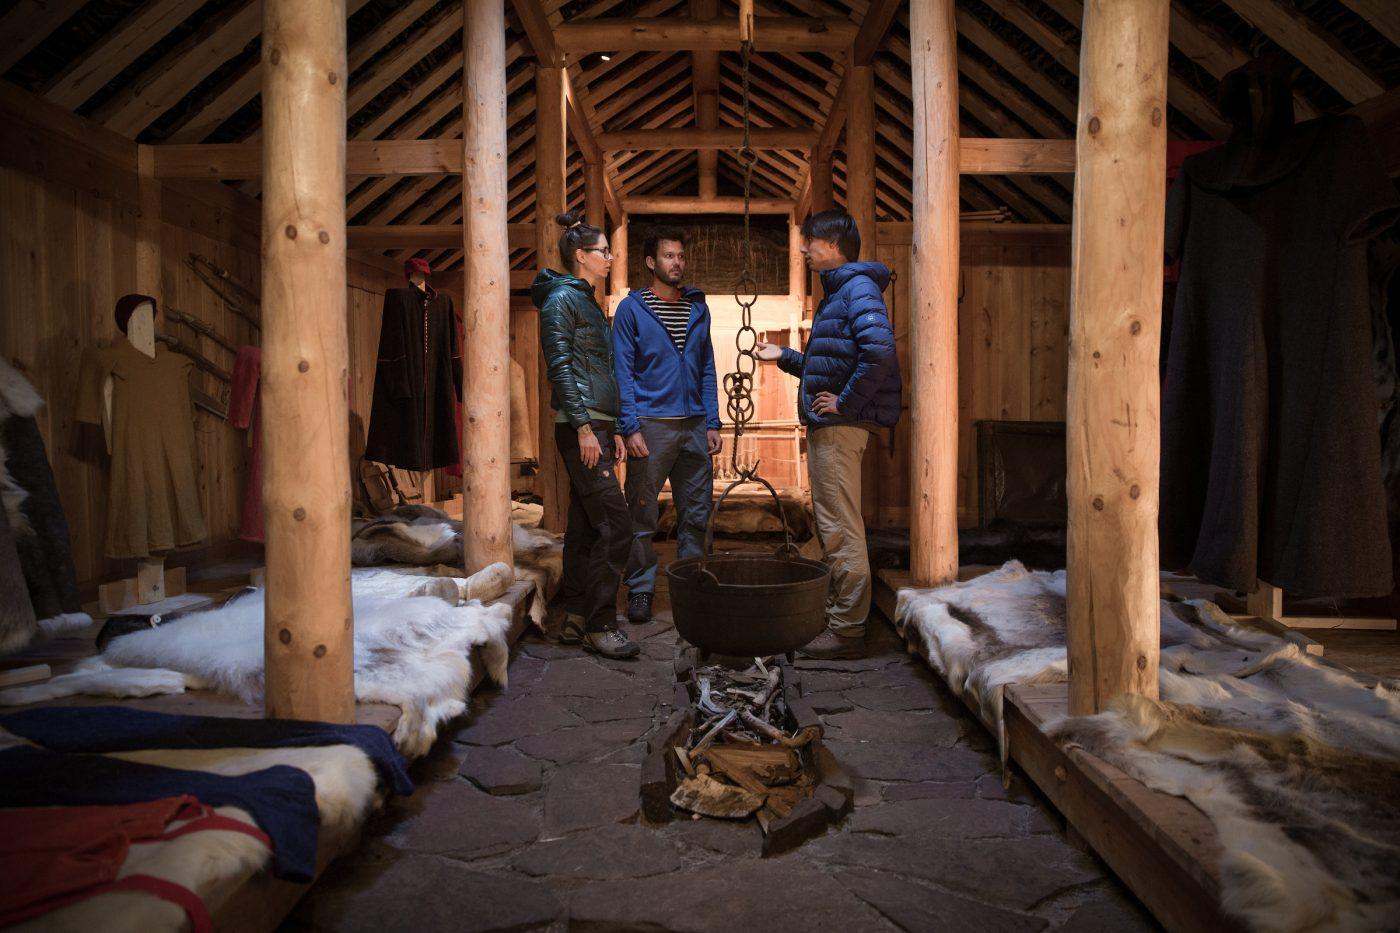 A guided tour inside the Norse longhouse in Qassiarsuk, South Greenland. By Mads Pihl